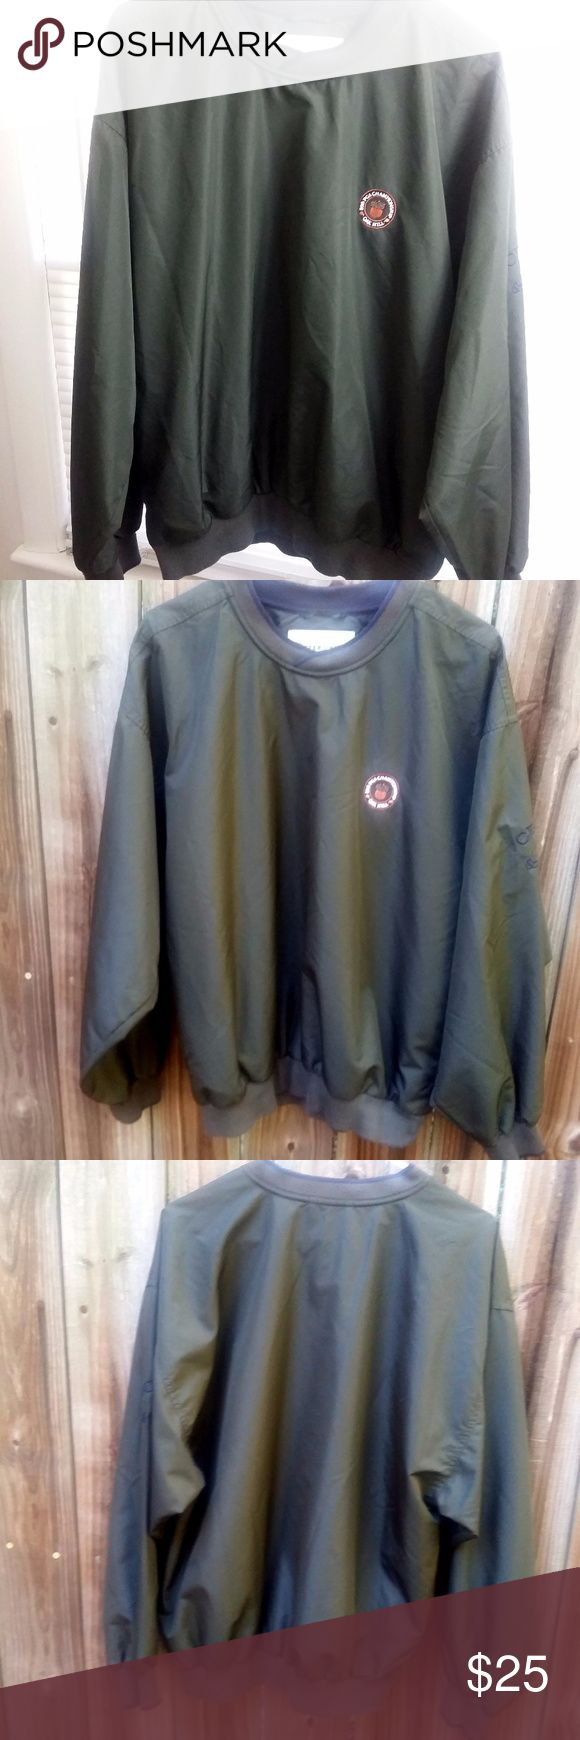 Cutter & Buck PGA Golf Championship Windbreaker This is a vintage Men's PGA Golf green windbreaker by Cutter and Buck.  Features - Excellent Condition - 85th PGA Championship Oak Hill emblem - Cutter & Buck logo on sleeve - 100% Polyester & Water Resistant  - Ribbed Sleeve Cuffs - Mesh Netting Lining Cutter & Buck Jackets & Coats Windbreakers